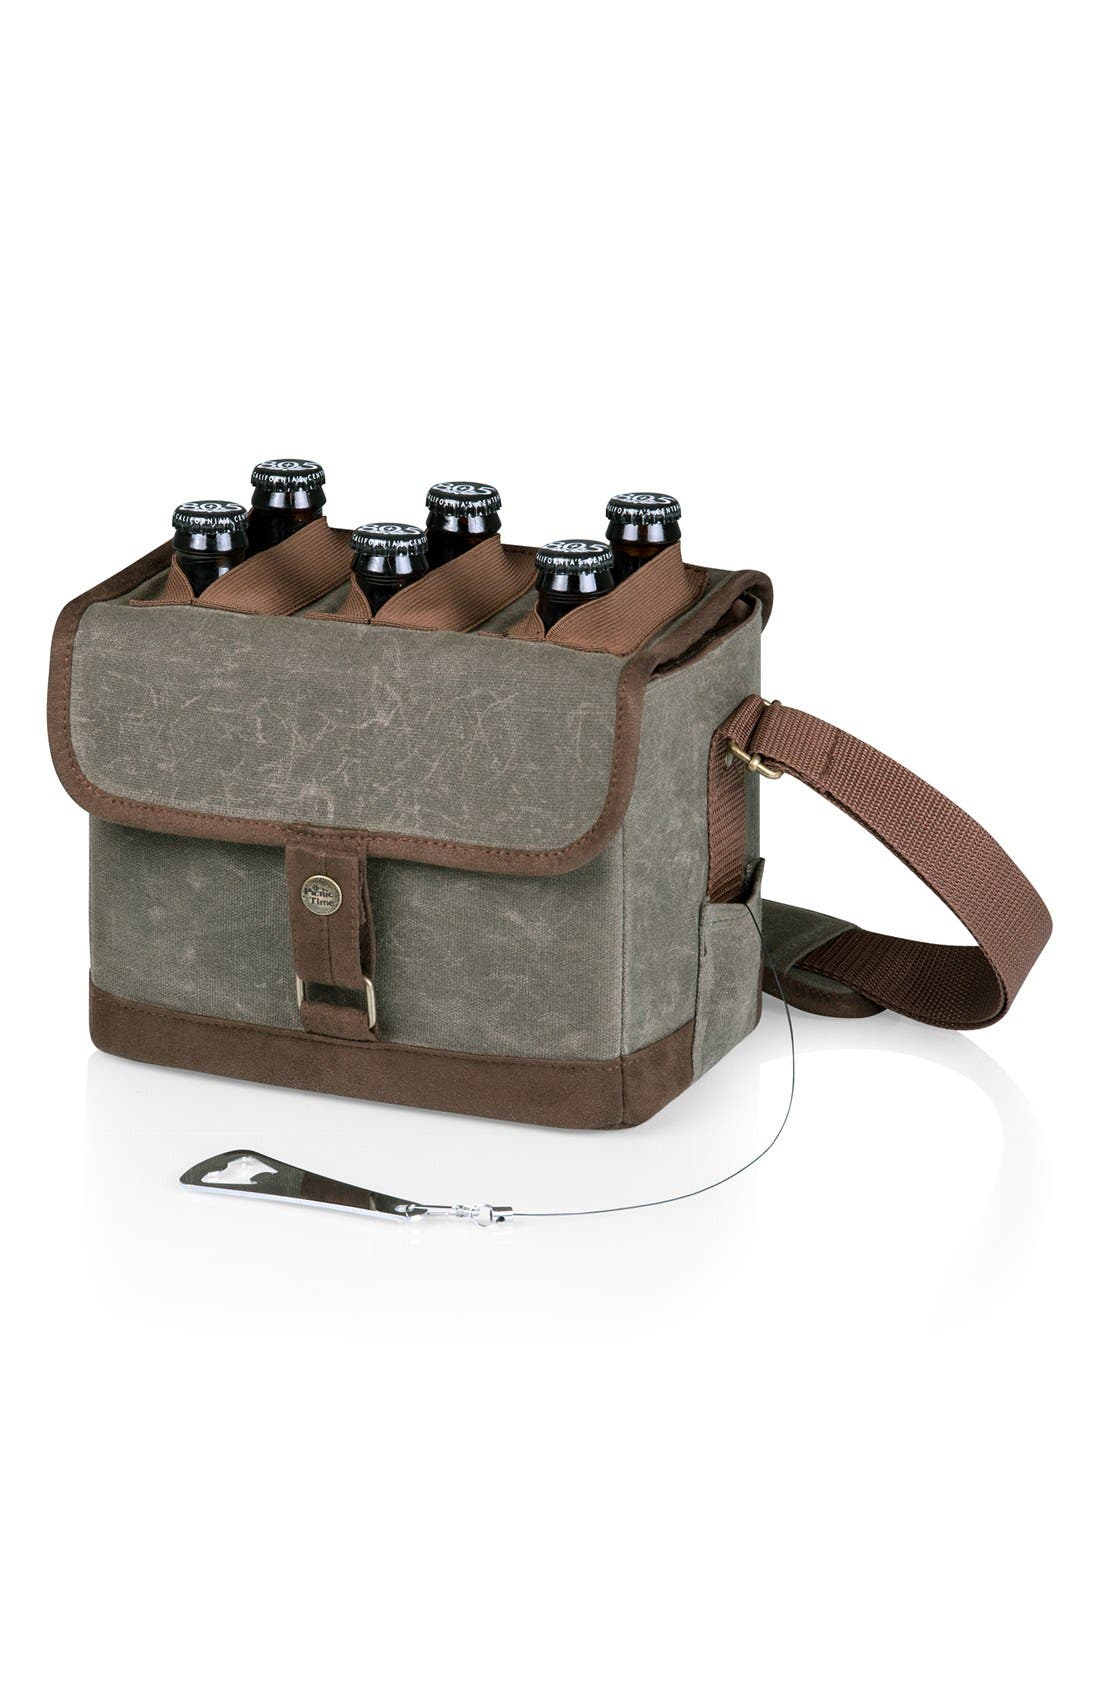 Main Image - Picnic Time Six-Pack Insulated Cooler